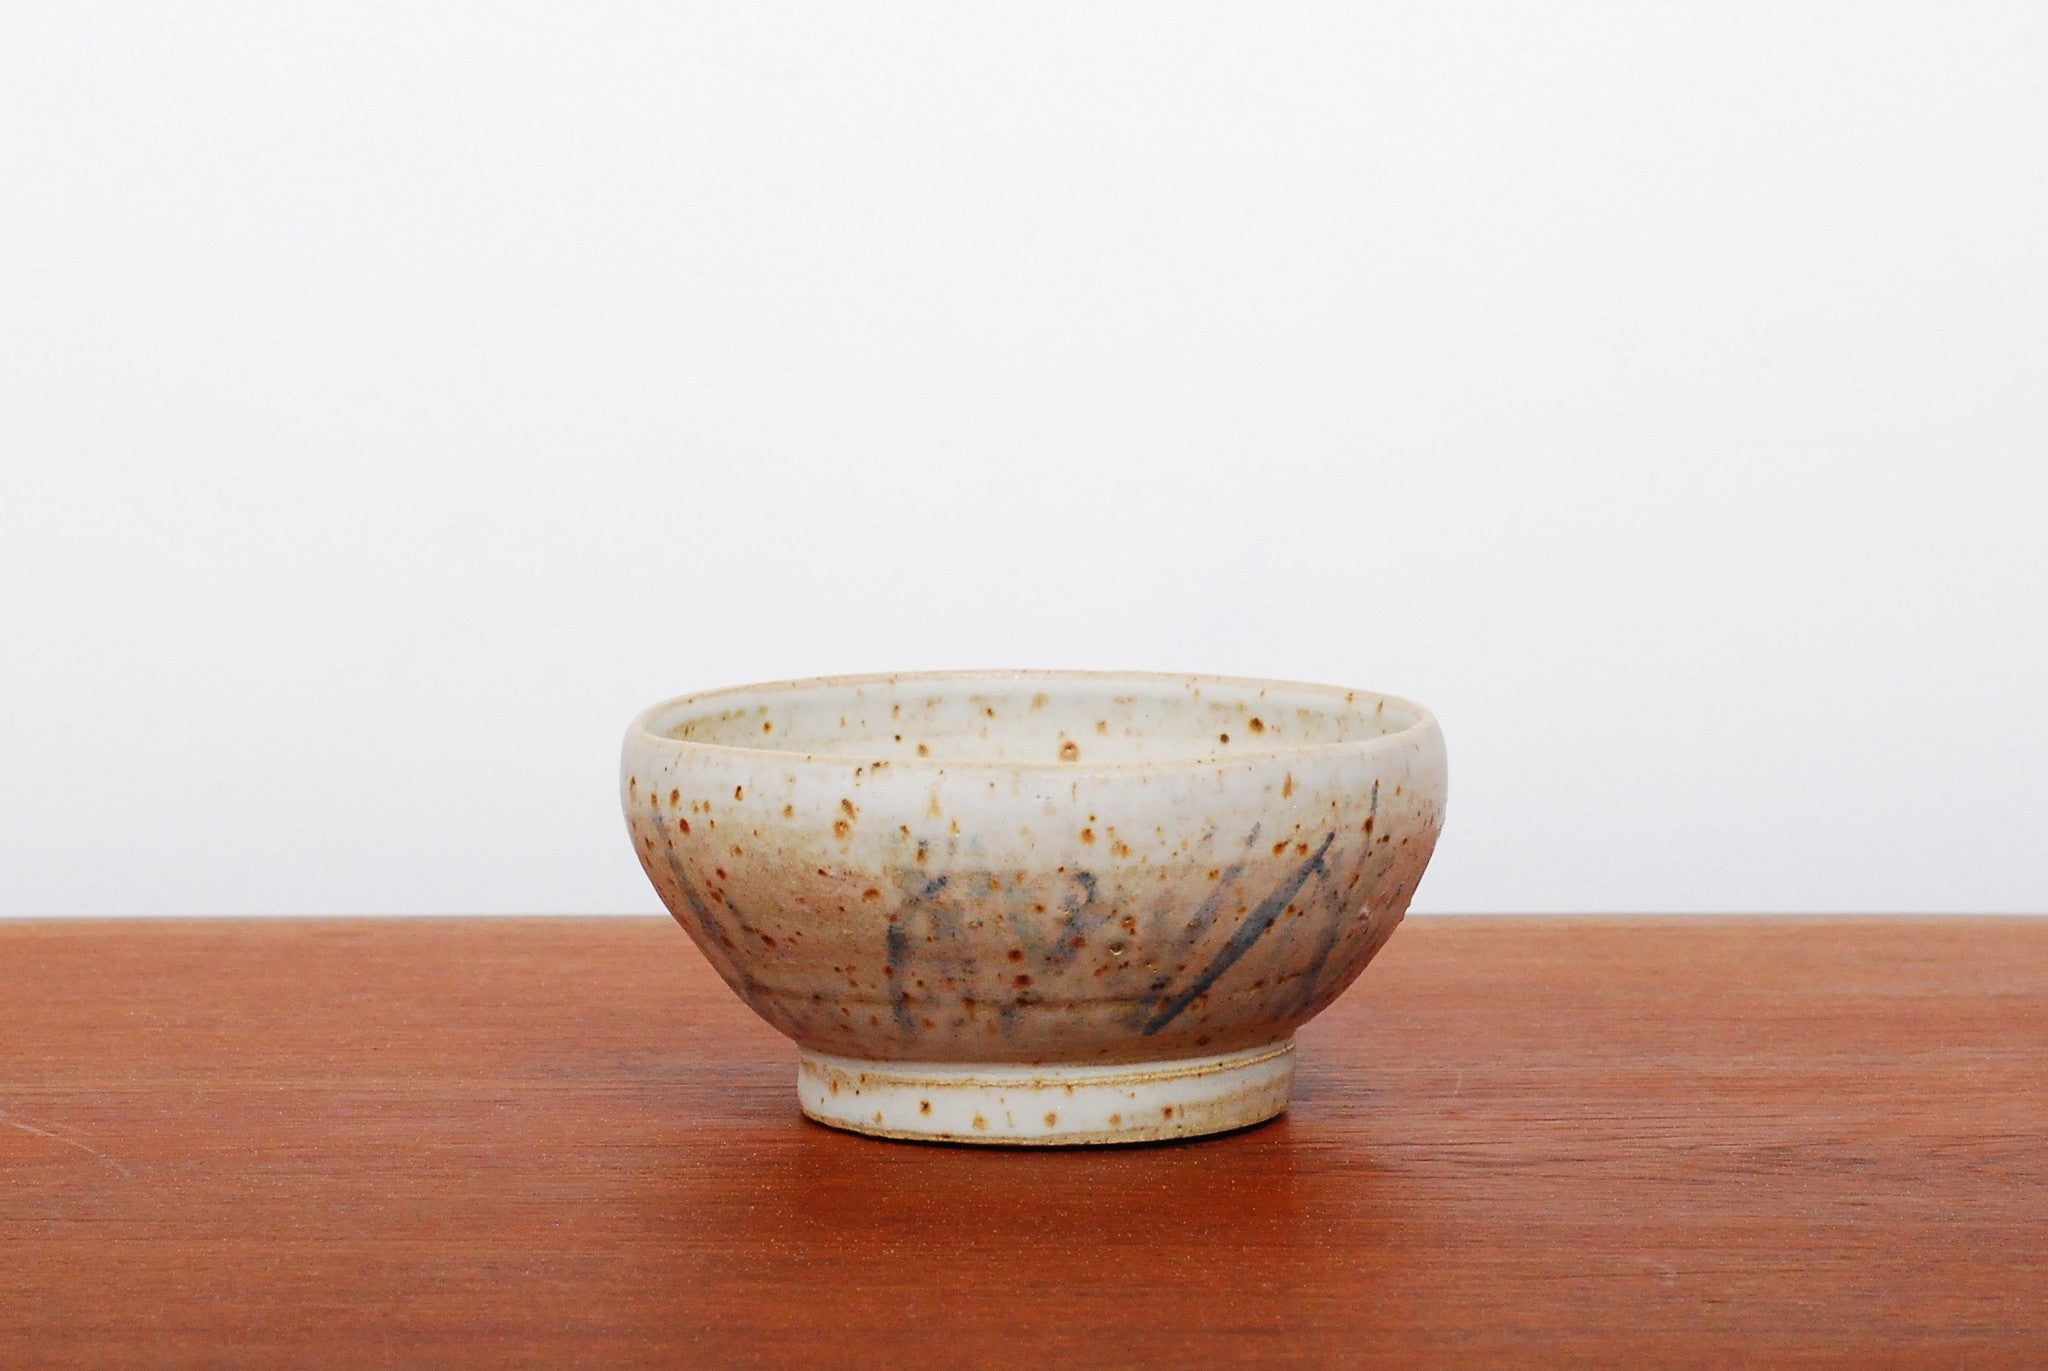 Freckled stoneware bowl